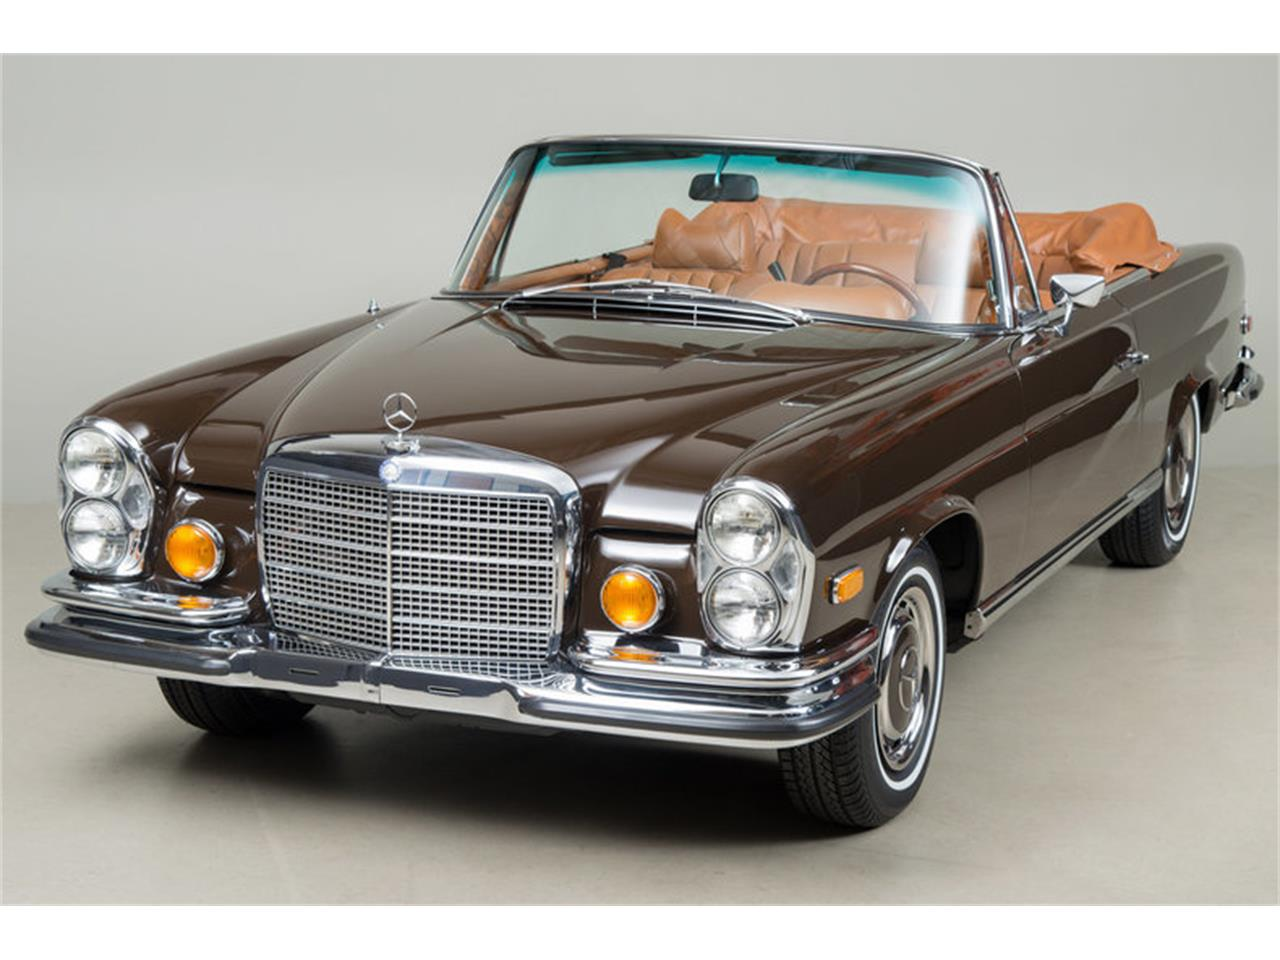 Large Picture of 1971 Mercedes-Benz 280 SE 3.5 Cabriolet located in Scotts Valley California Auction Vehicle - G0JQ